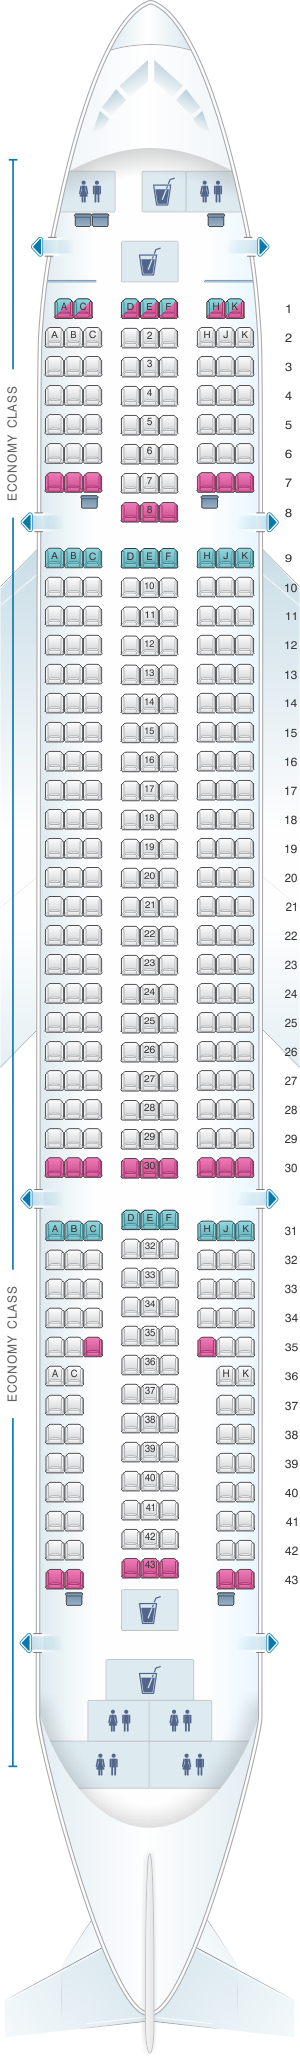 Seat map for Monarch Airlines Airbus A300 600